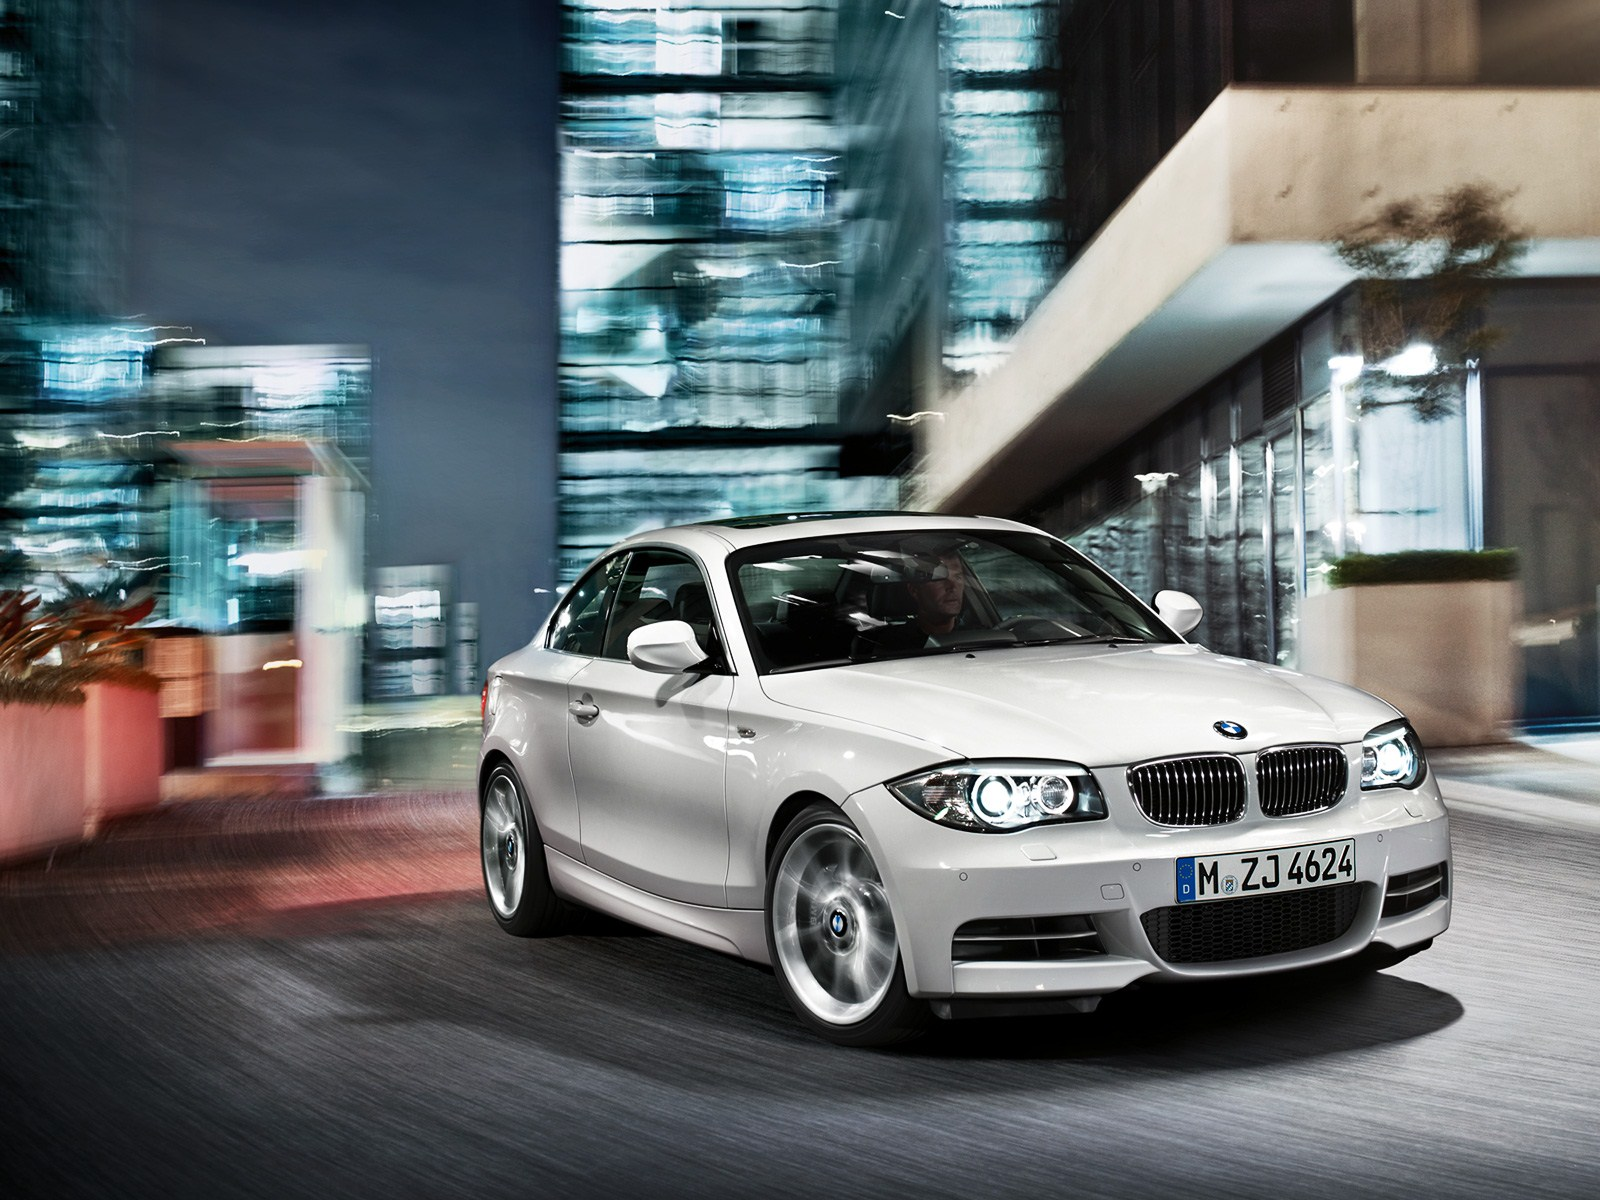 bmw 1er coupe (e82) 2011 pictures #1